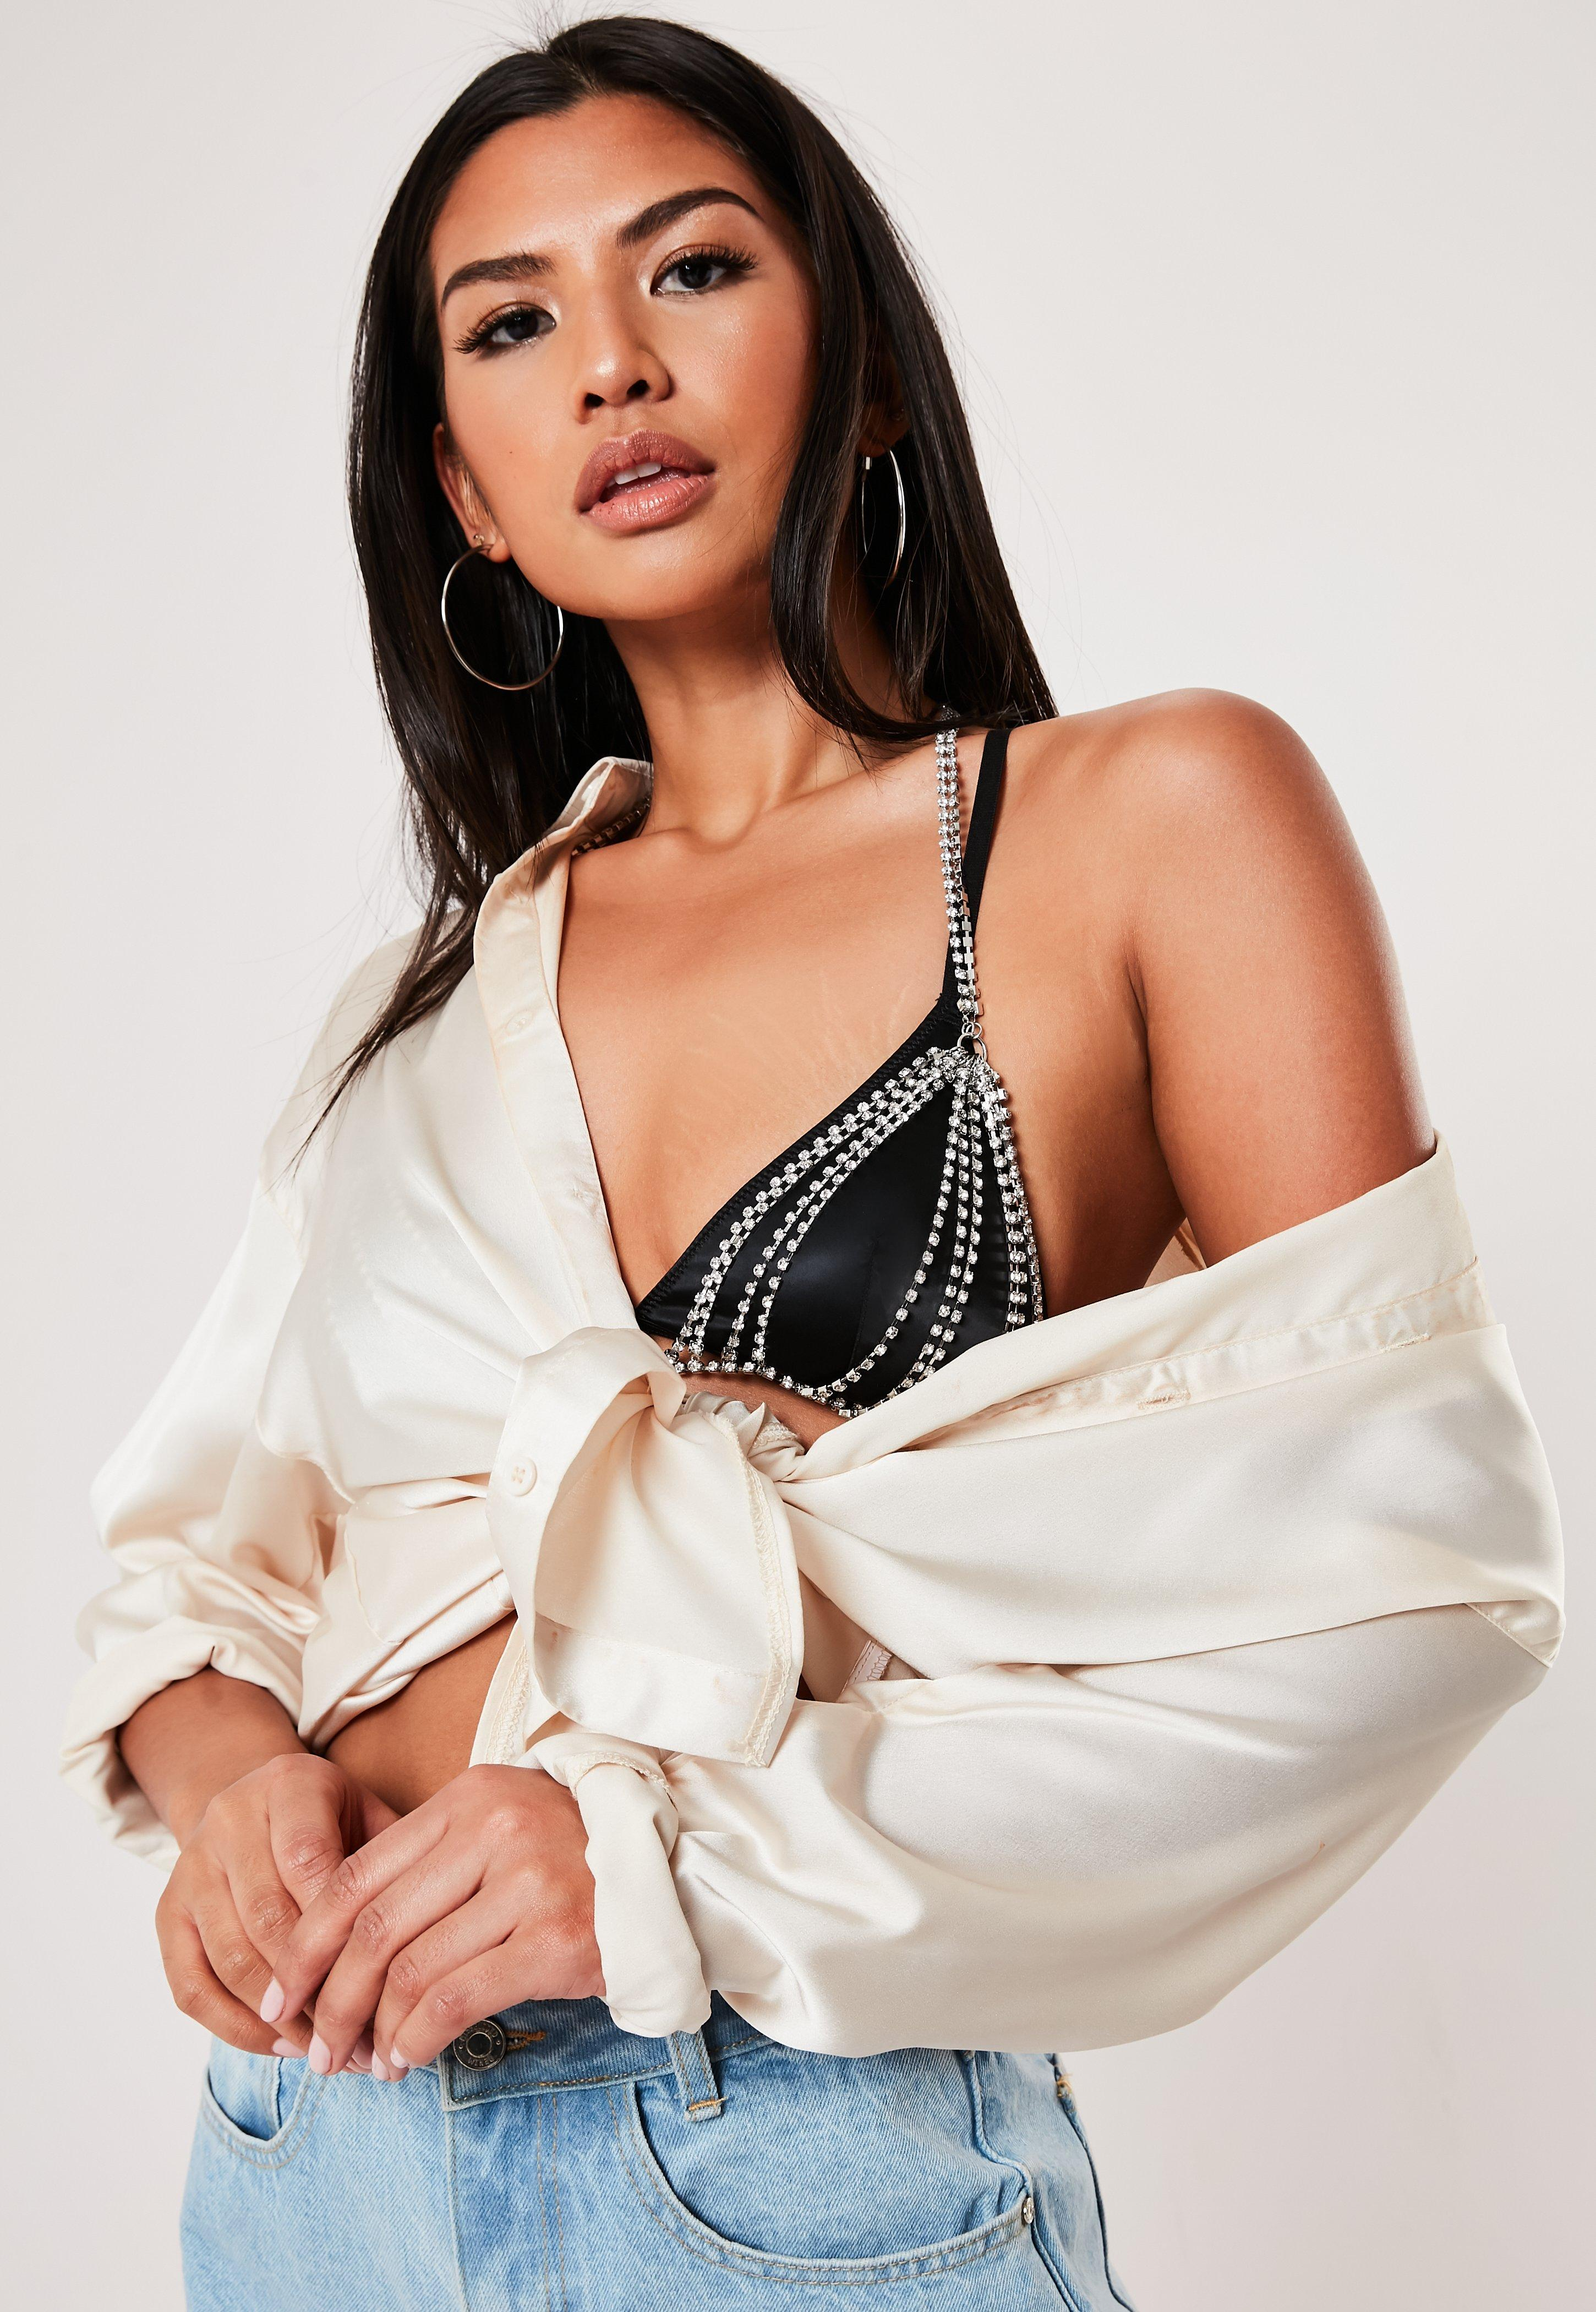 91905dab Backless Bra | Nipple Covers and Strapless Bras - Missguided